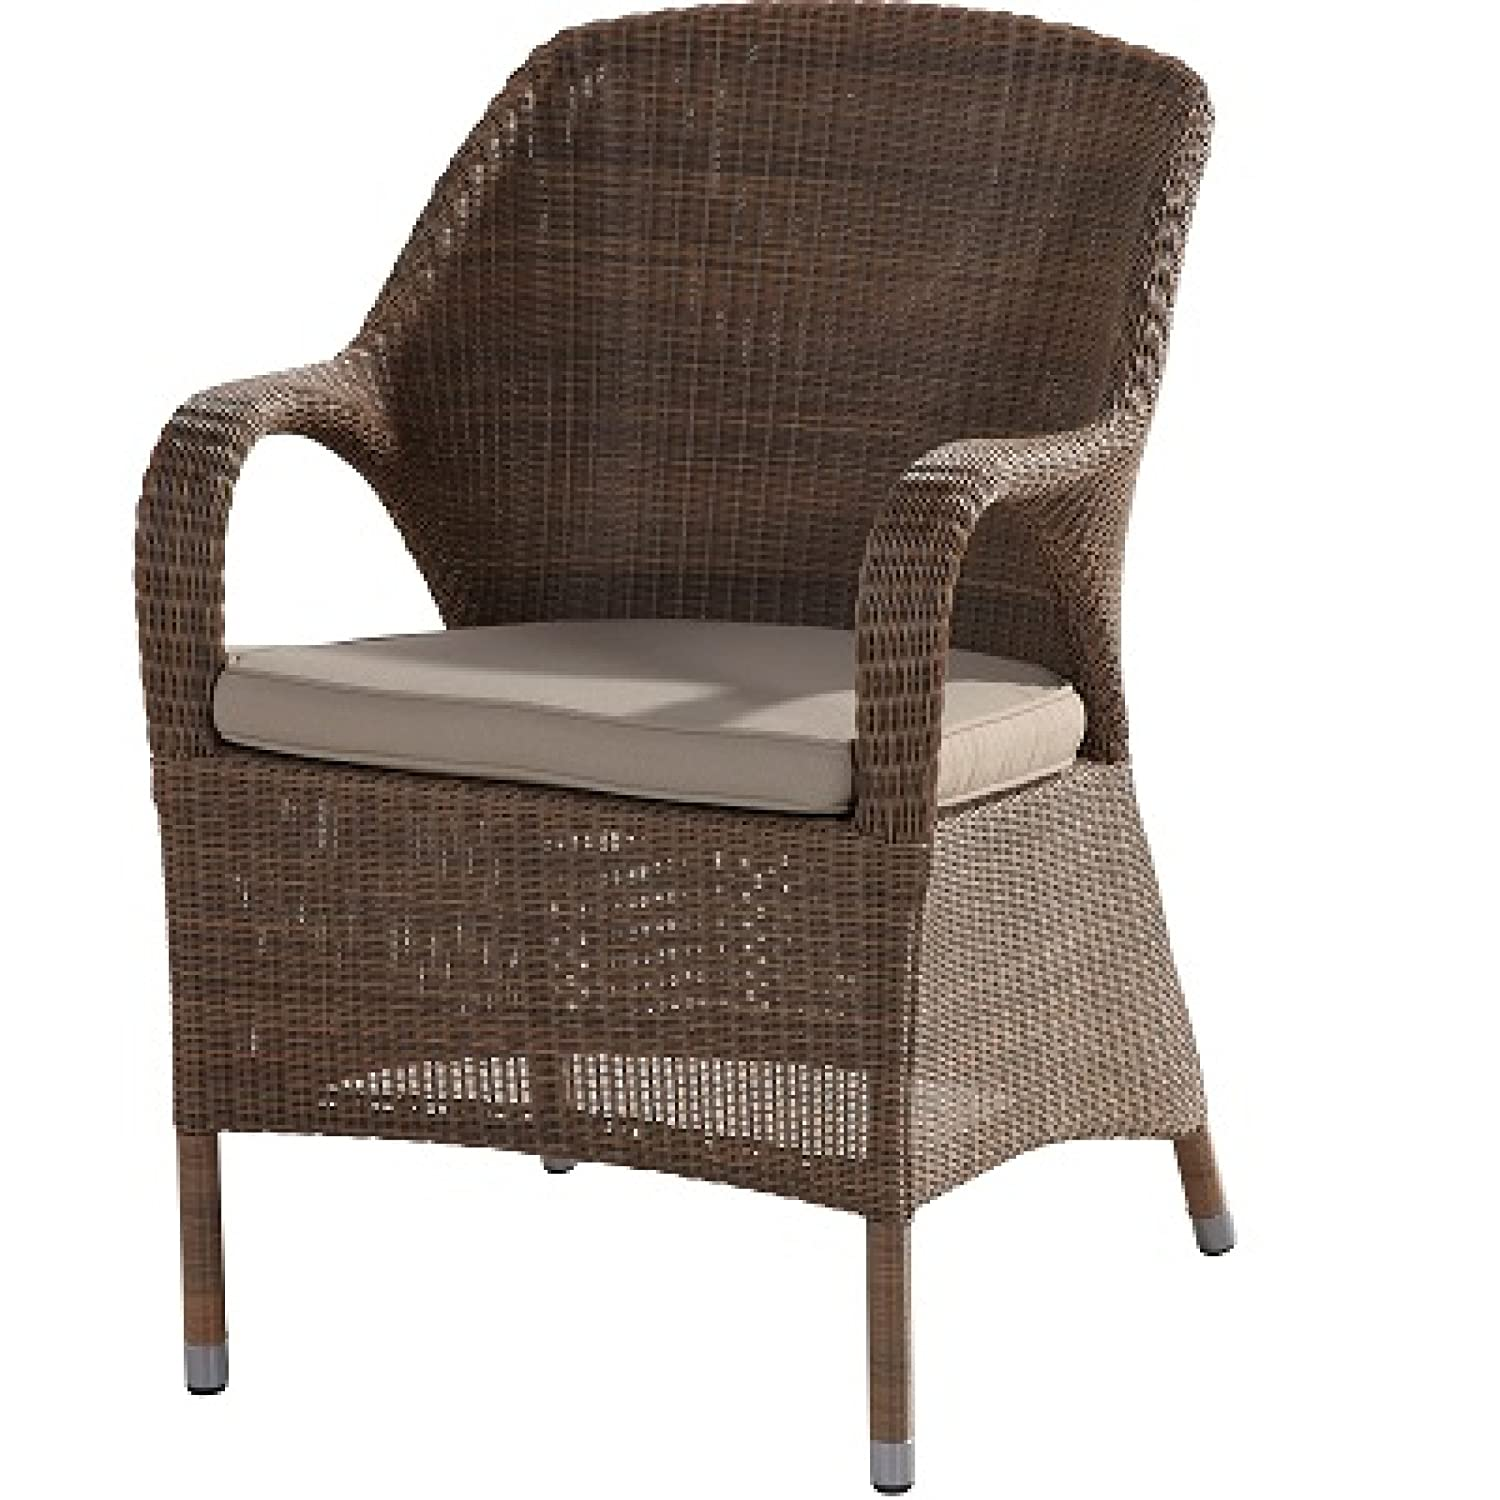 4Seasons Outdoor Sussex Dining Sessel Polyloom taupe wicker inkl. Sitzkissen